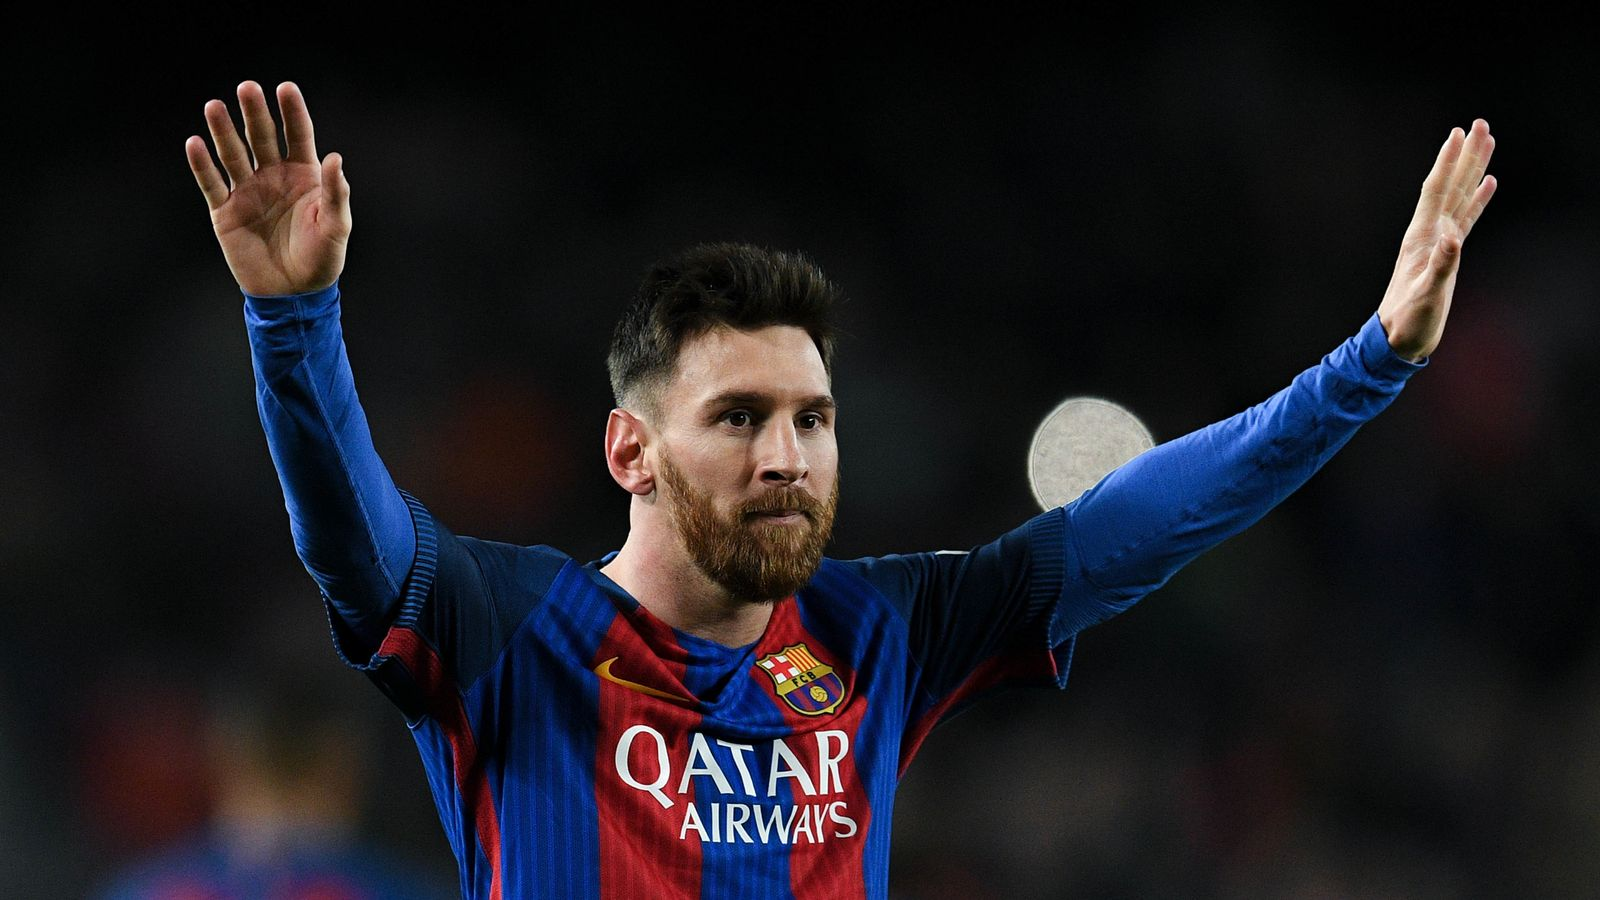 Lionel Messi Footballer Reluctantly Stays At Barca But Says Club President Did Not Keep His Word World News Sky News